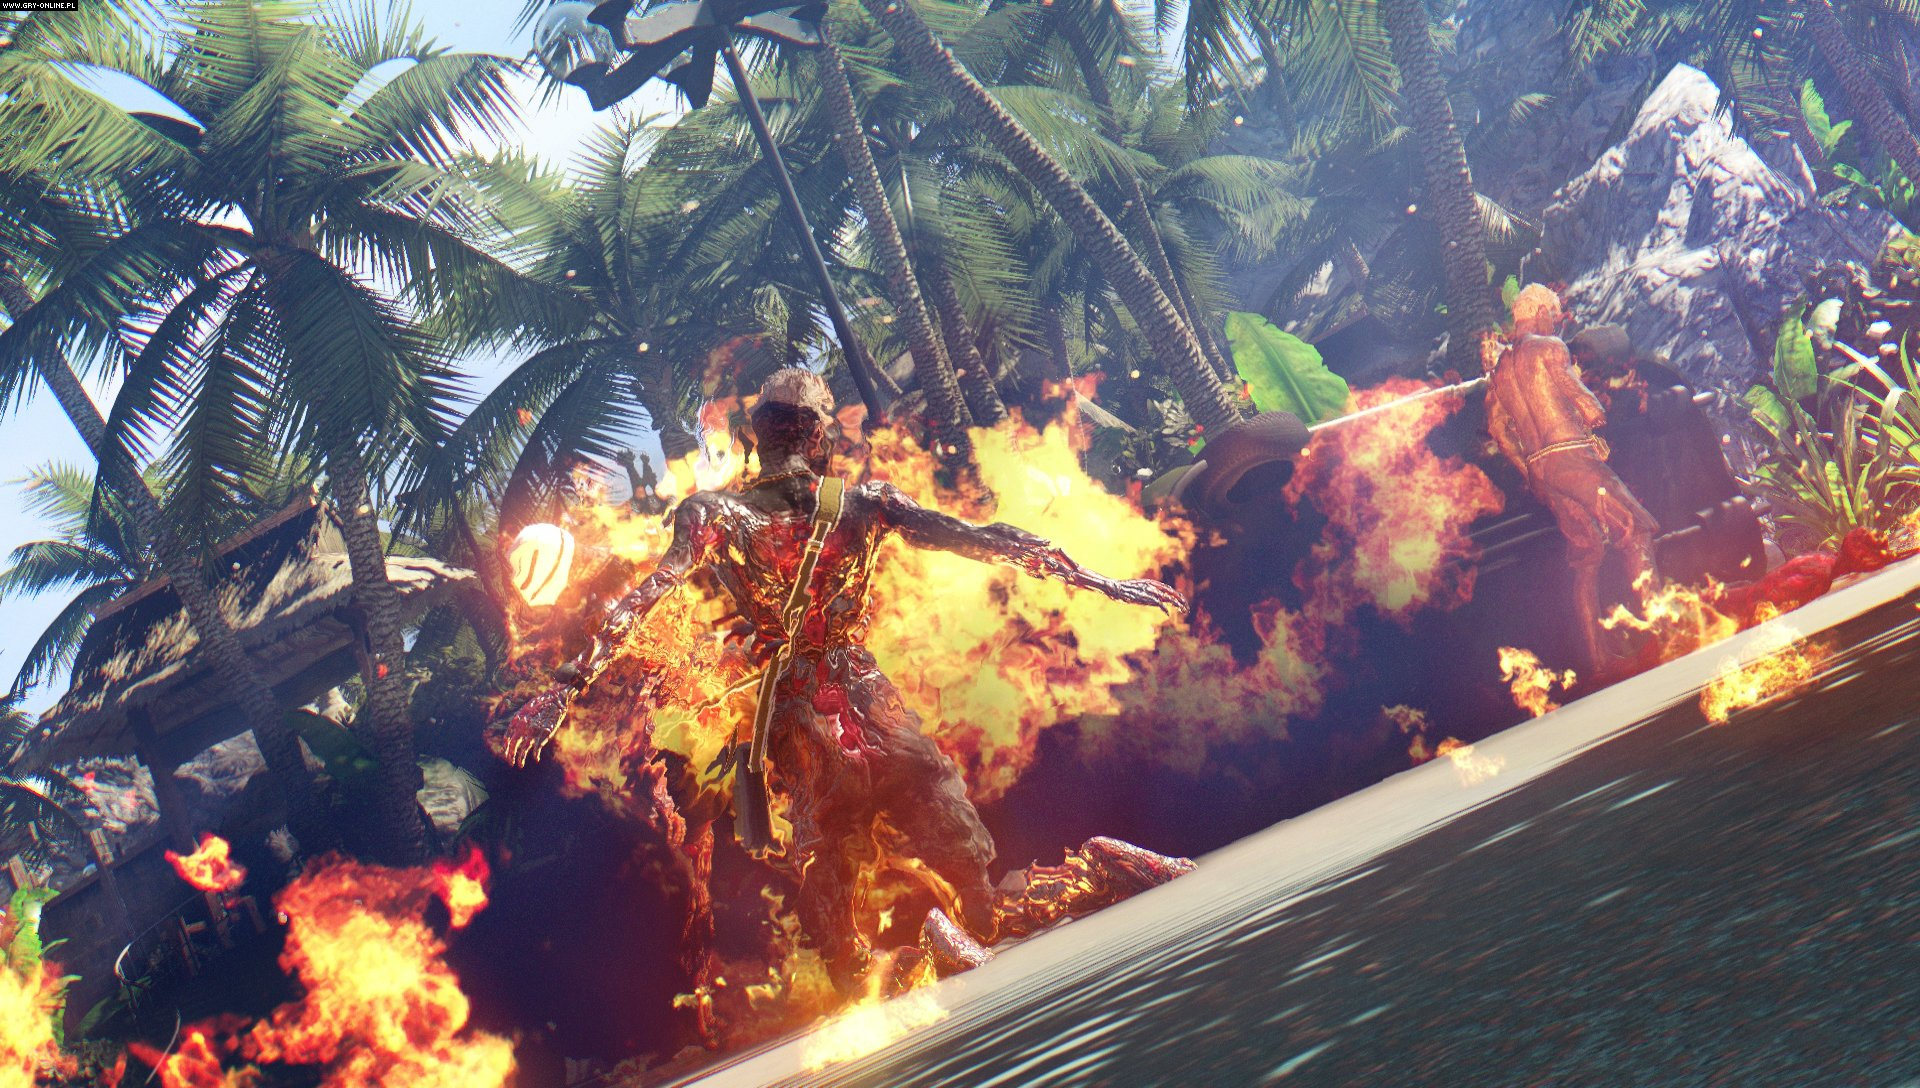 Dead Island: Definitive Collection PC, PS4, XONE Gry Screen 5/16, Techland, Deep Silver / Koch Media